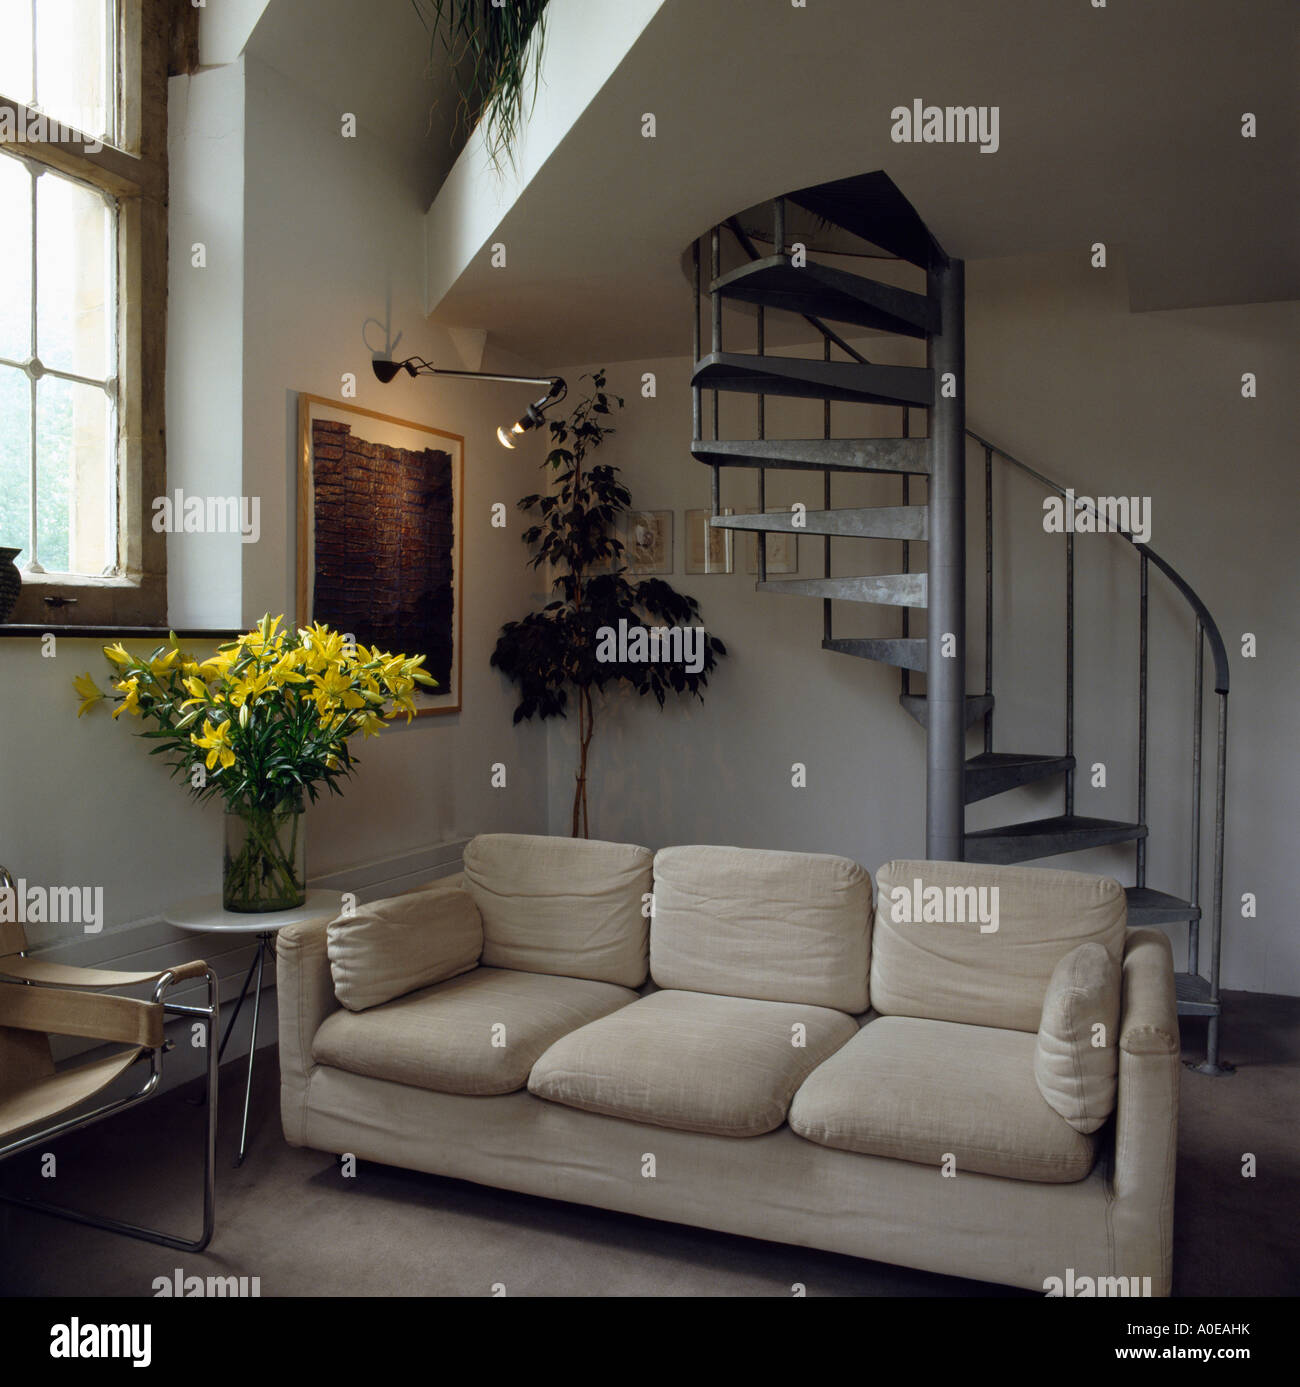 Modern Sofa In Attic Living Room With Spiral Staircase